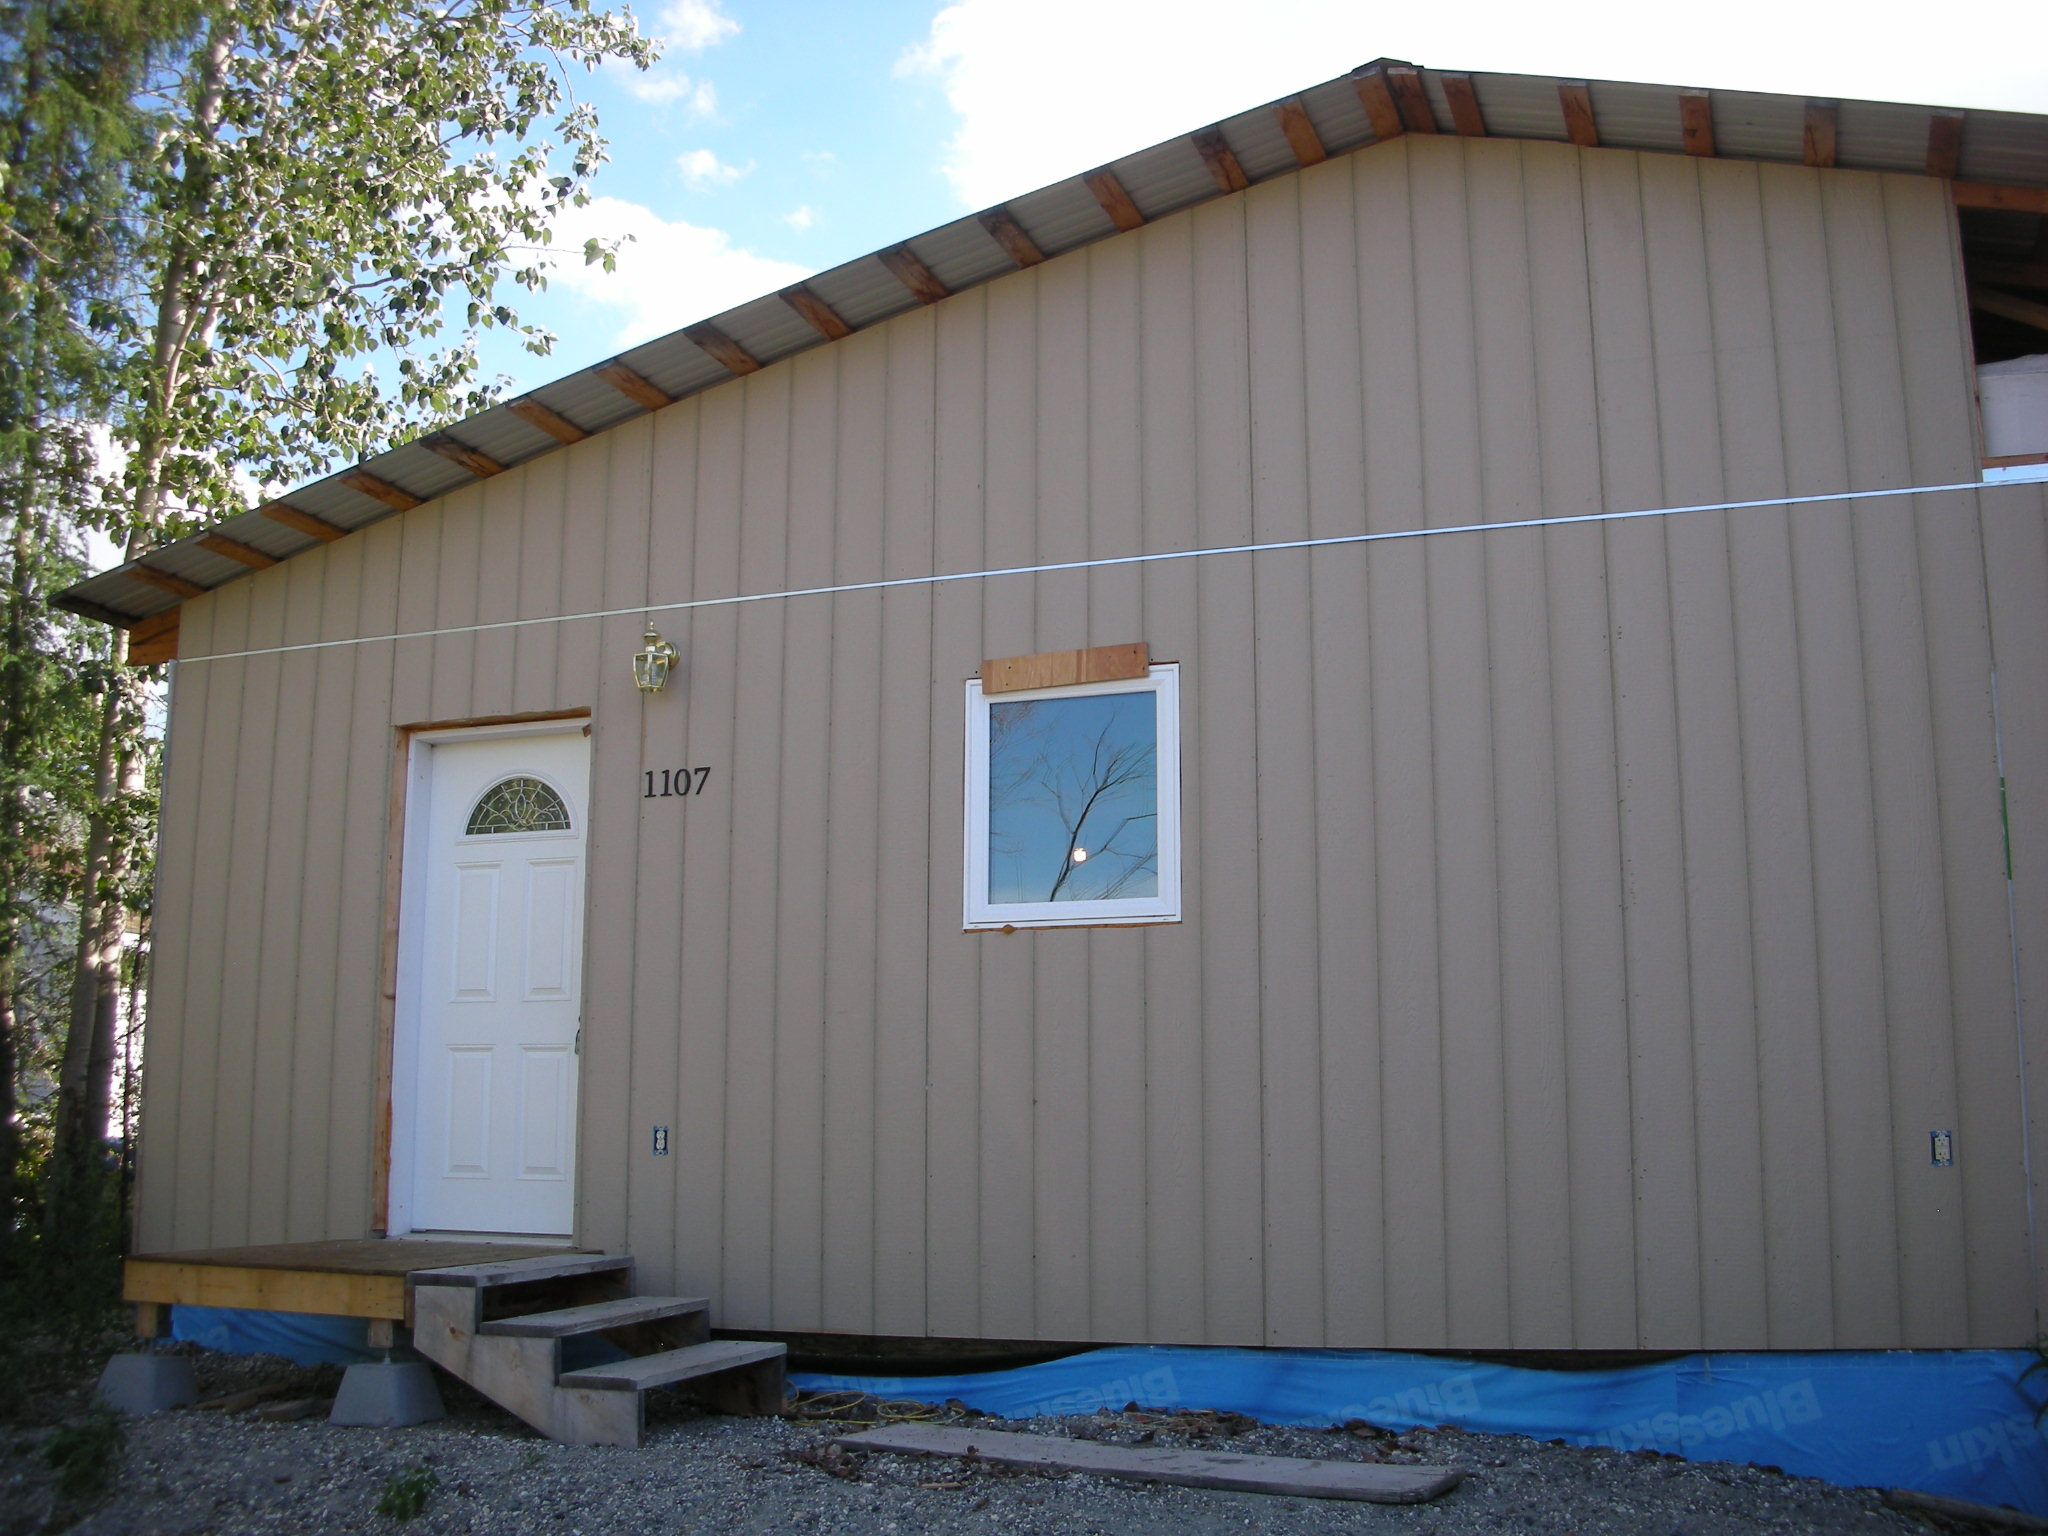 For Sale! 1107 Cube Ave. MLS # 123051 Visit www.NorthPoleRealty.com for more info!!  Provided by Century 21 Gold Rush